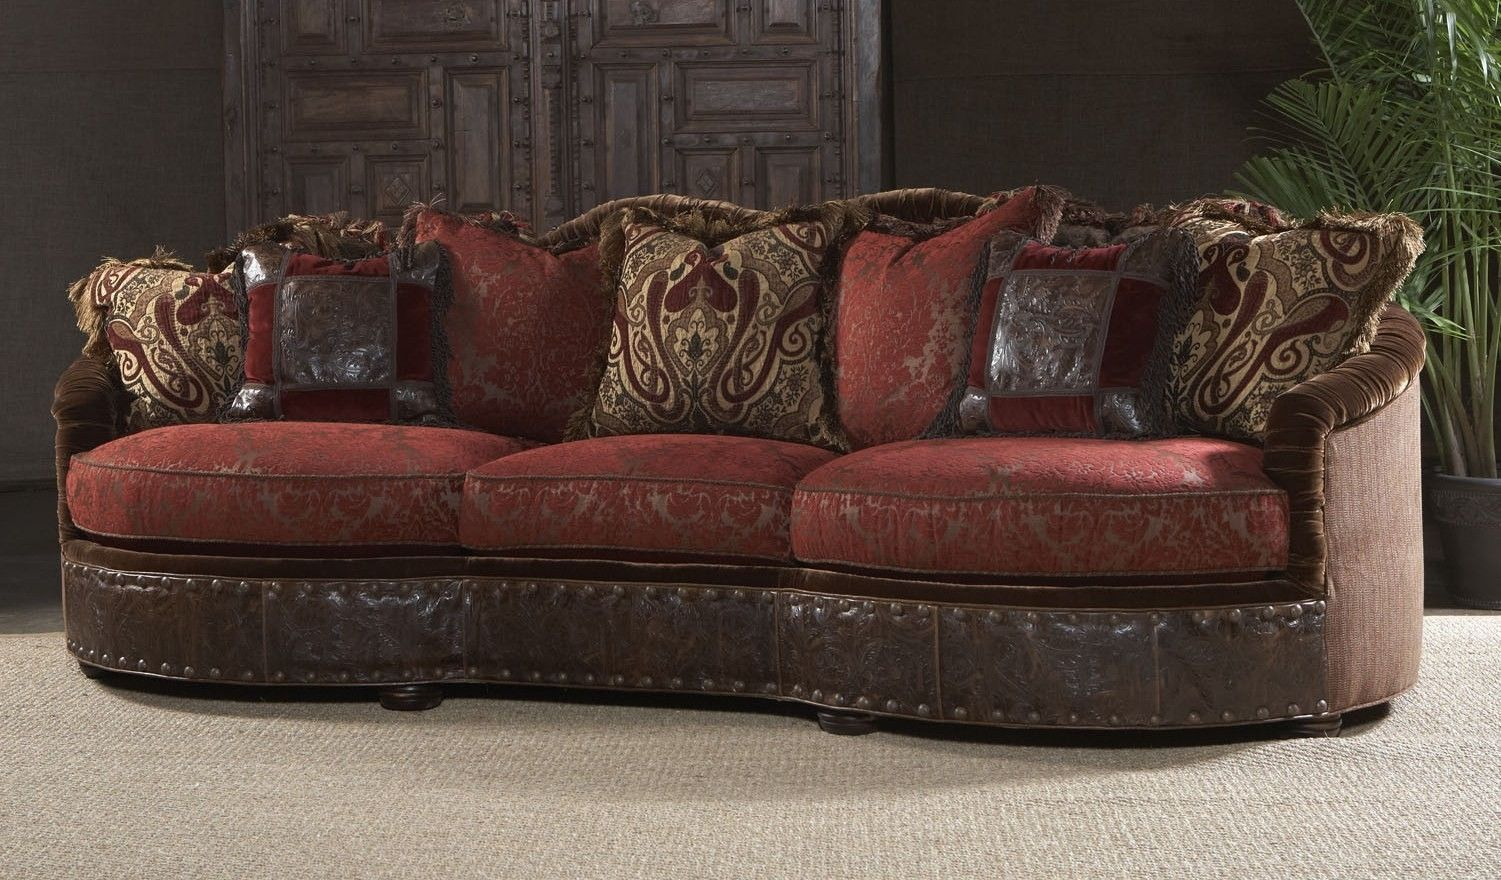 hand crafted luxury furniture sofa couch and decorative pillows by bernadette livingston. Black Bedroom Furniture Sets. Home Design Ideas